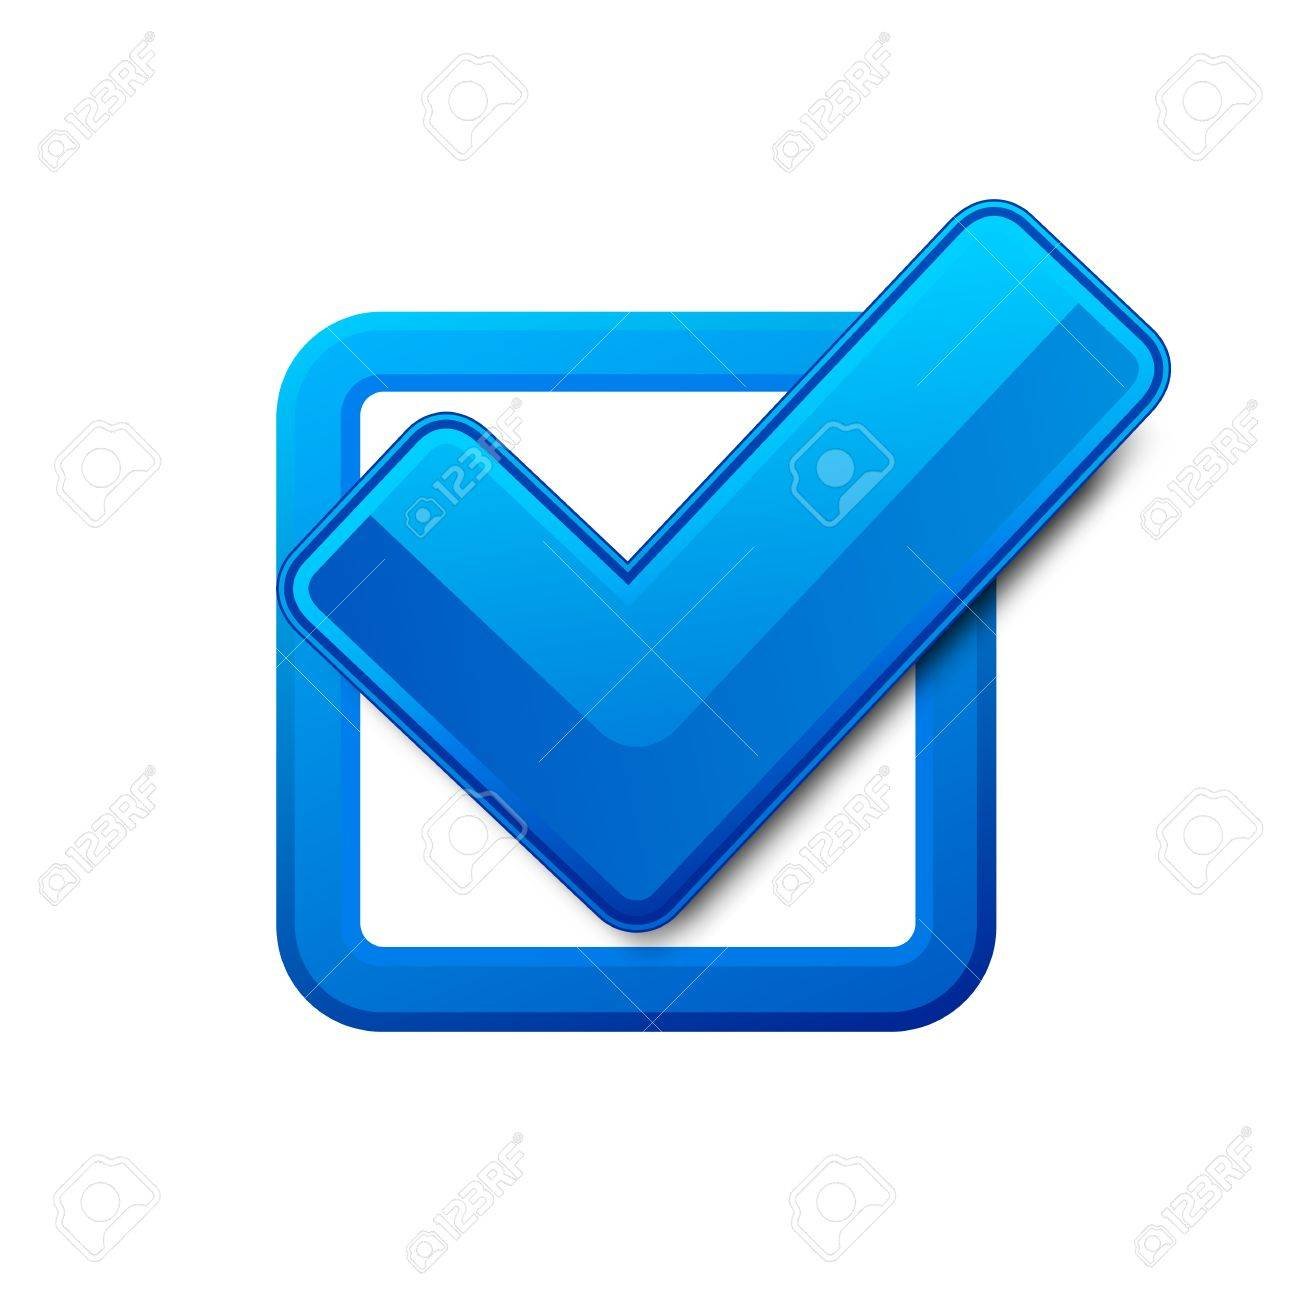 Blue Check Box And Check Mark Vector Illustration Royalty Free